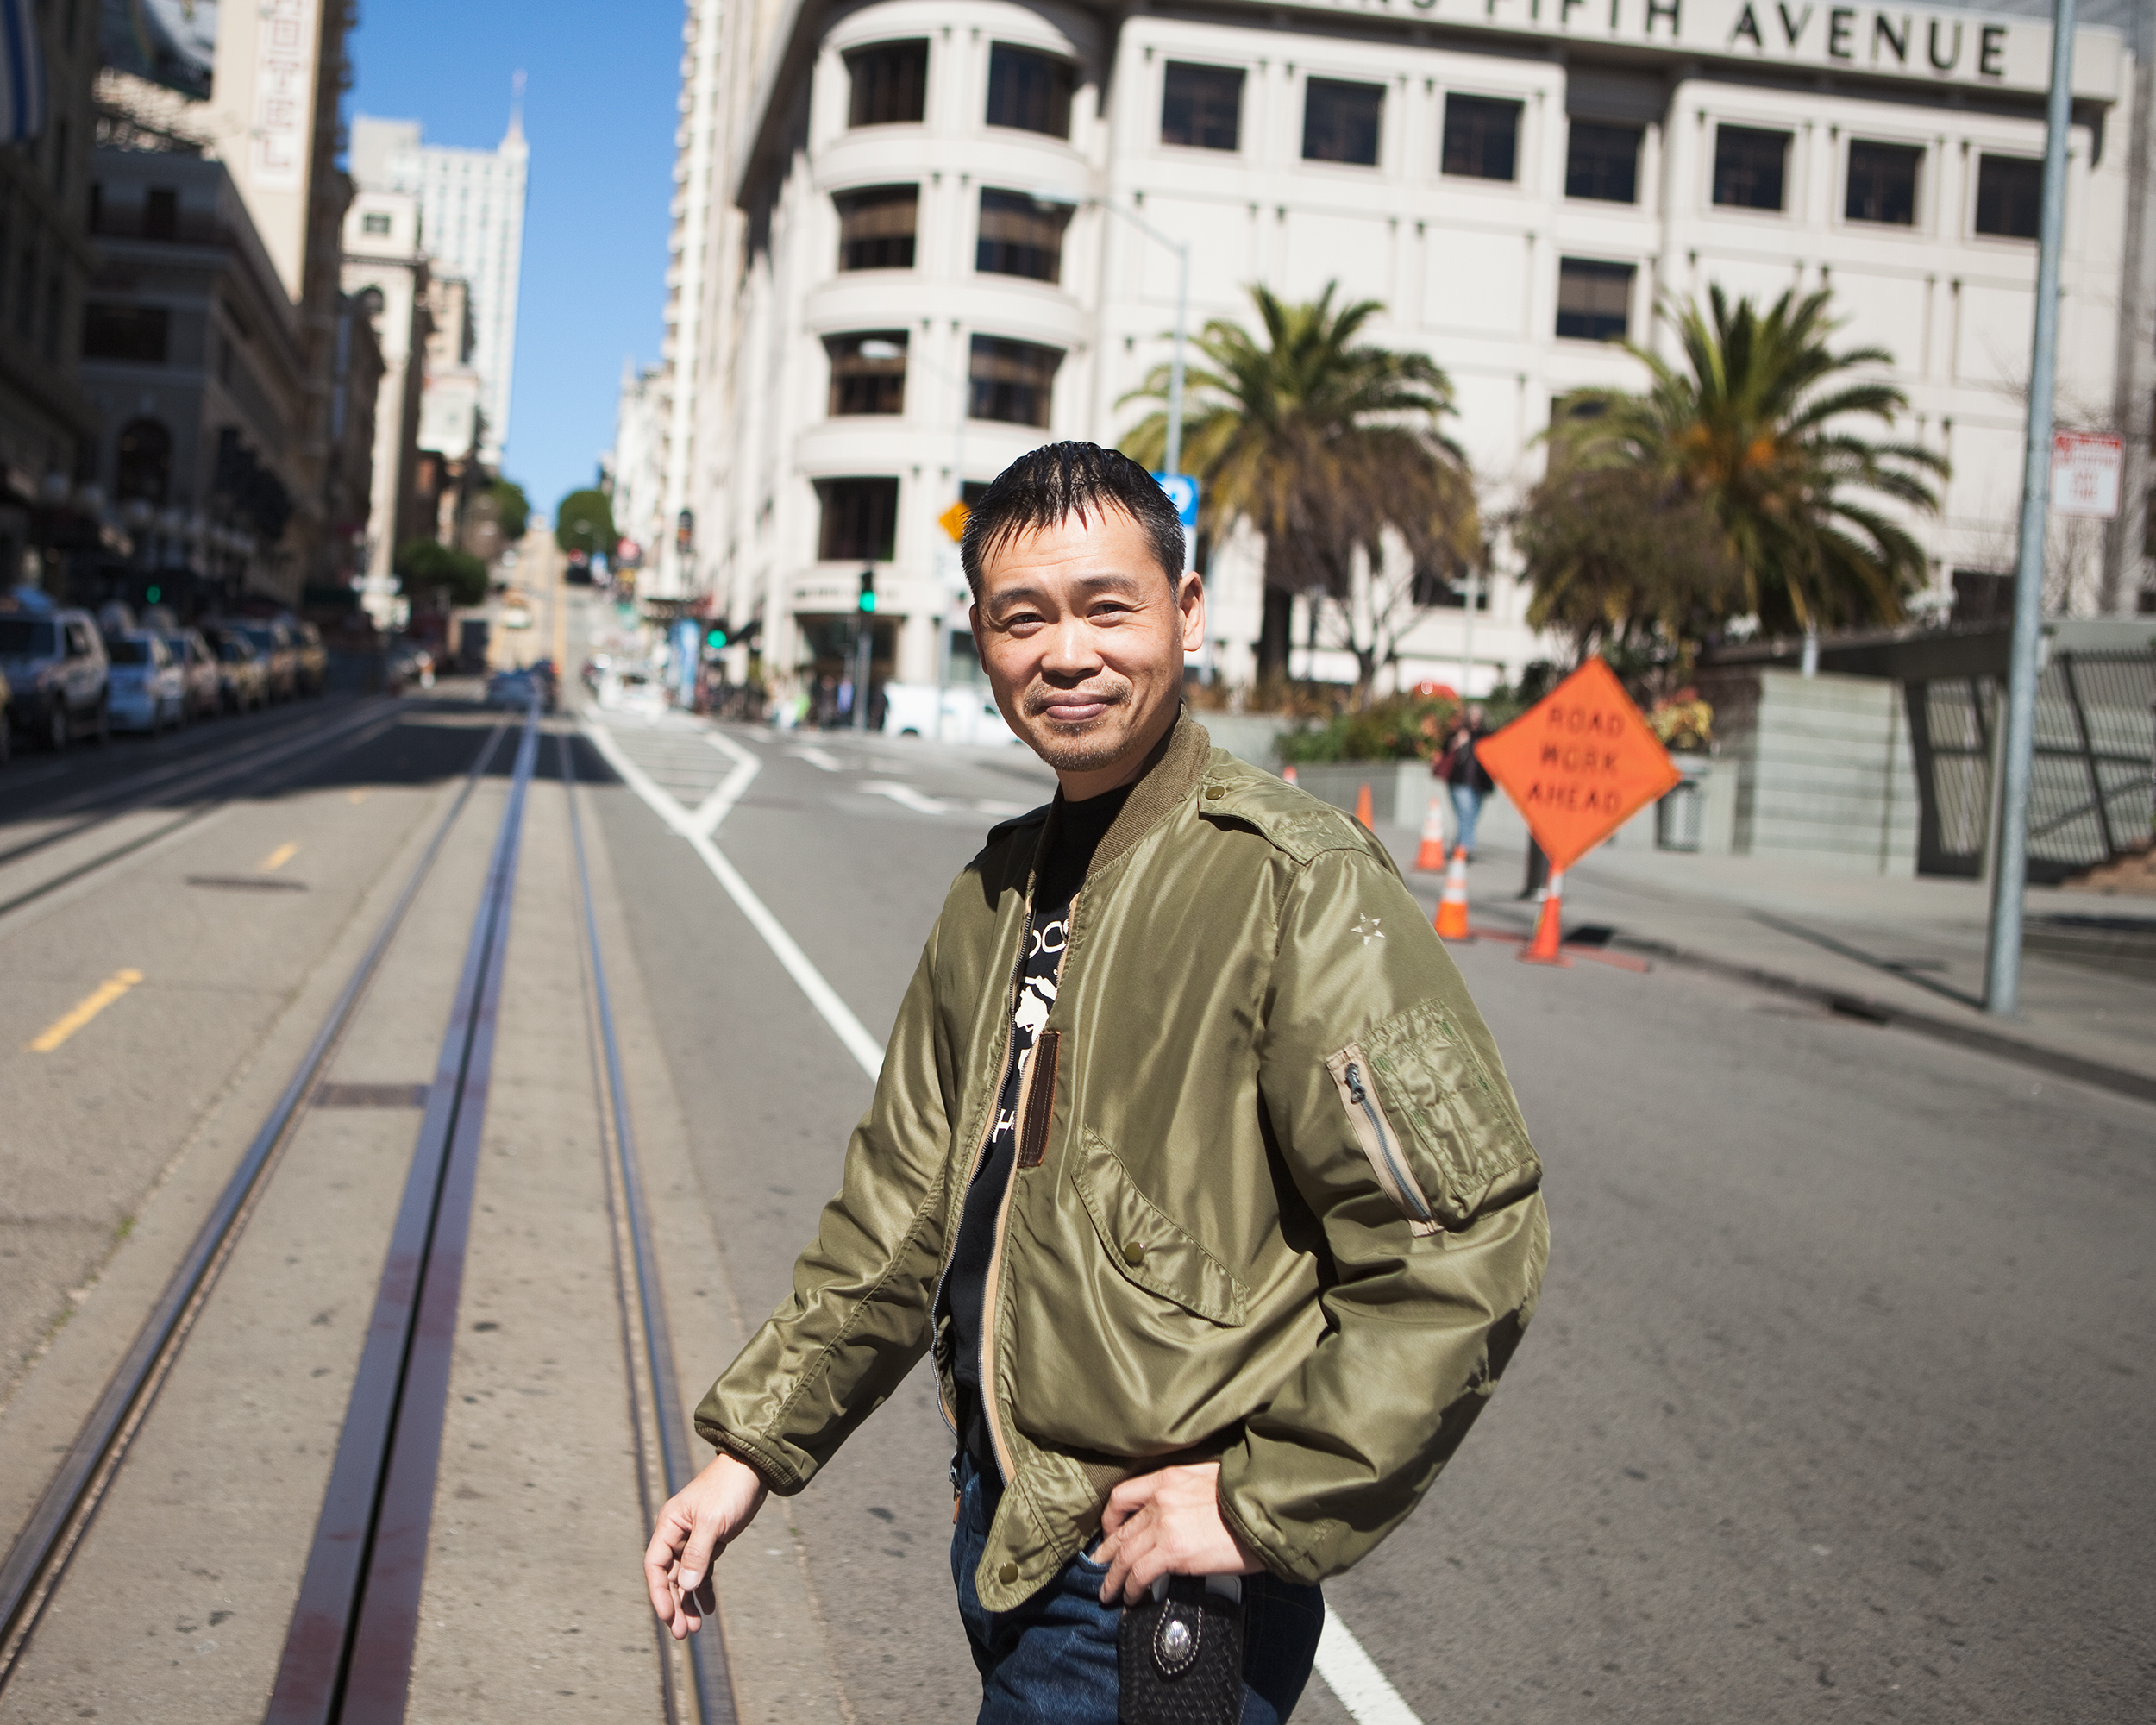 Keiji Inafune visits San Francisco for Game Developers Conference in March.